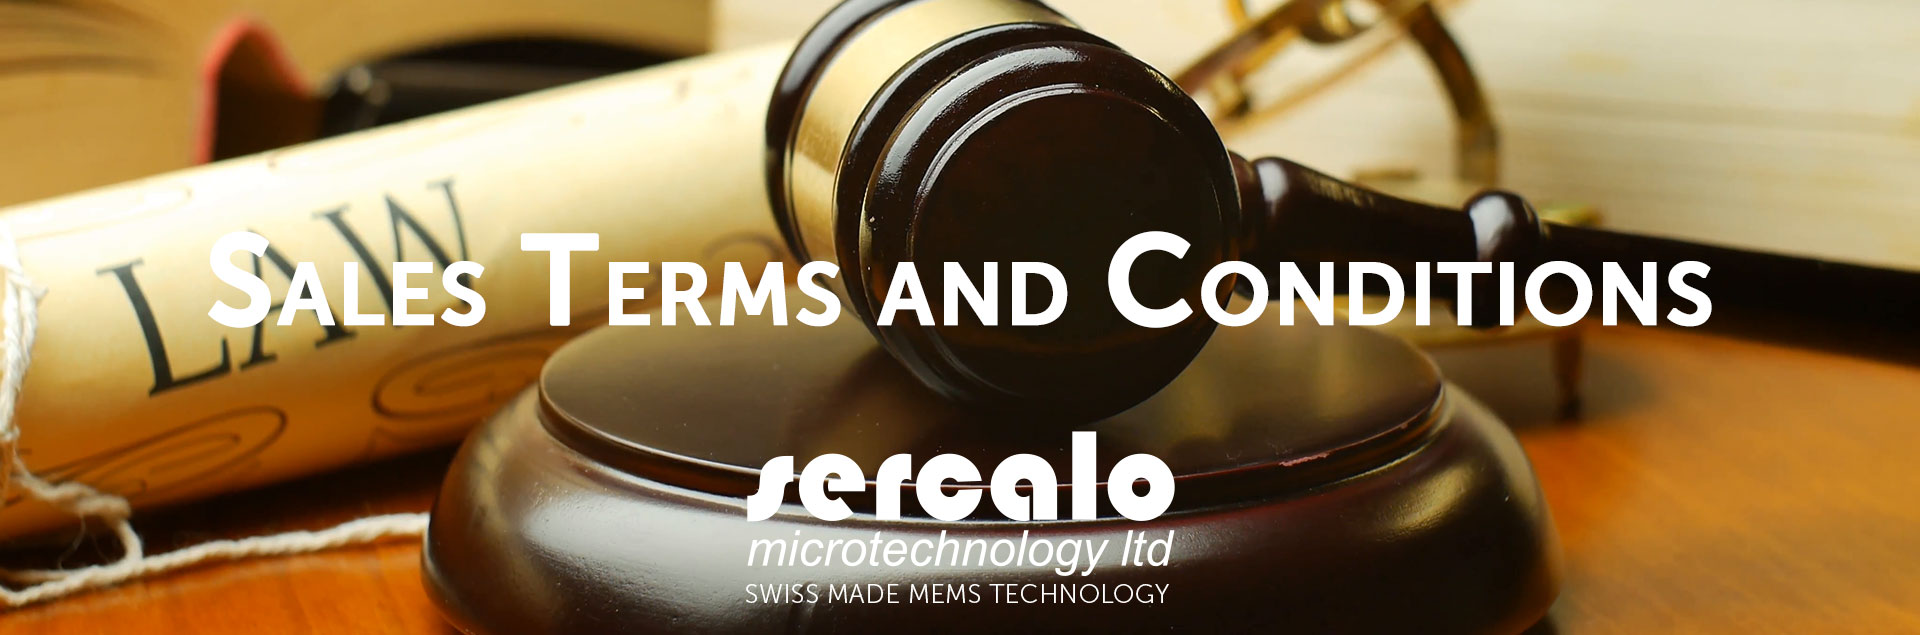 Sales Terms and conditions work with Sercalo Microtechnology Ltd.